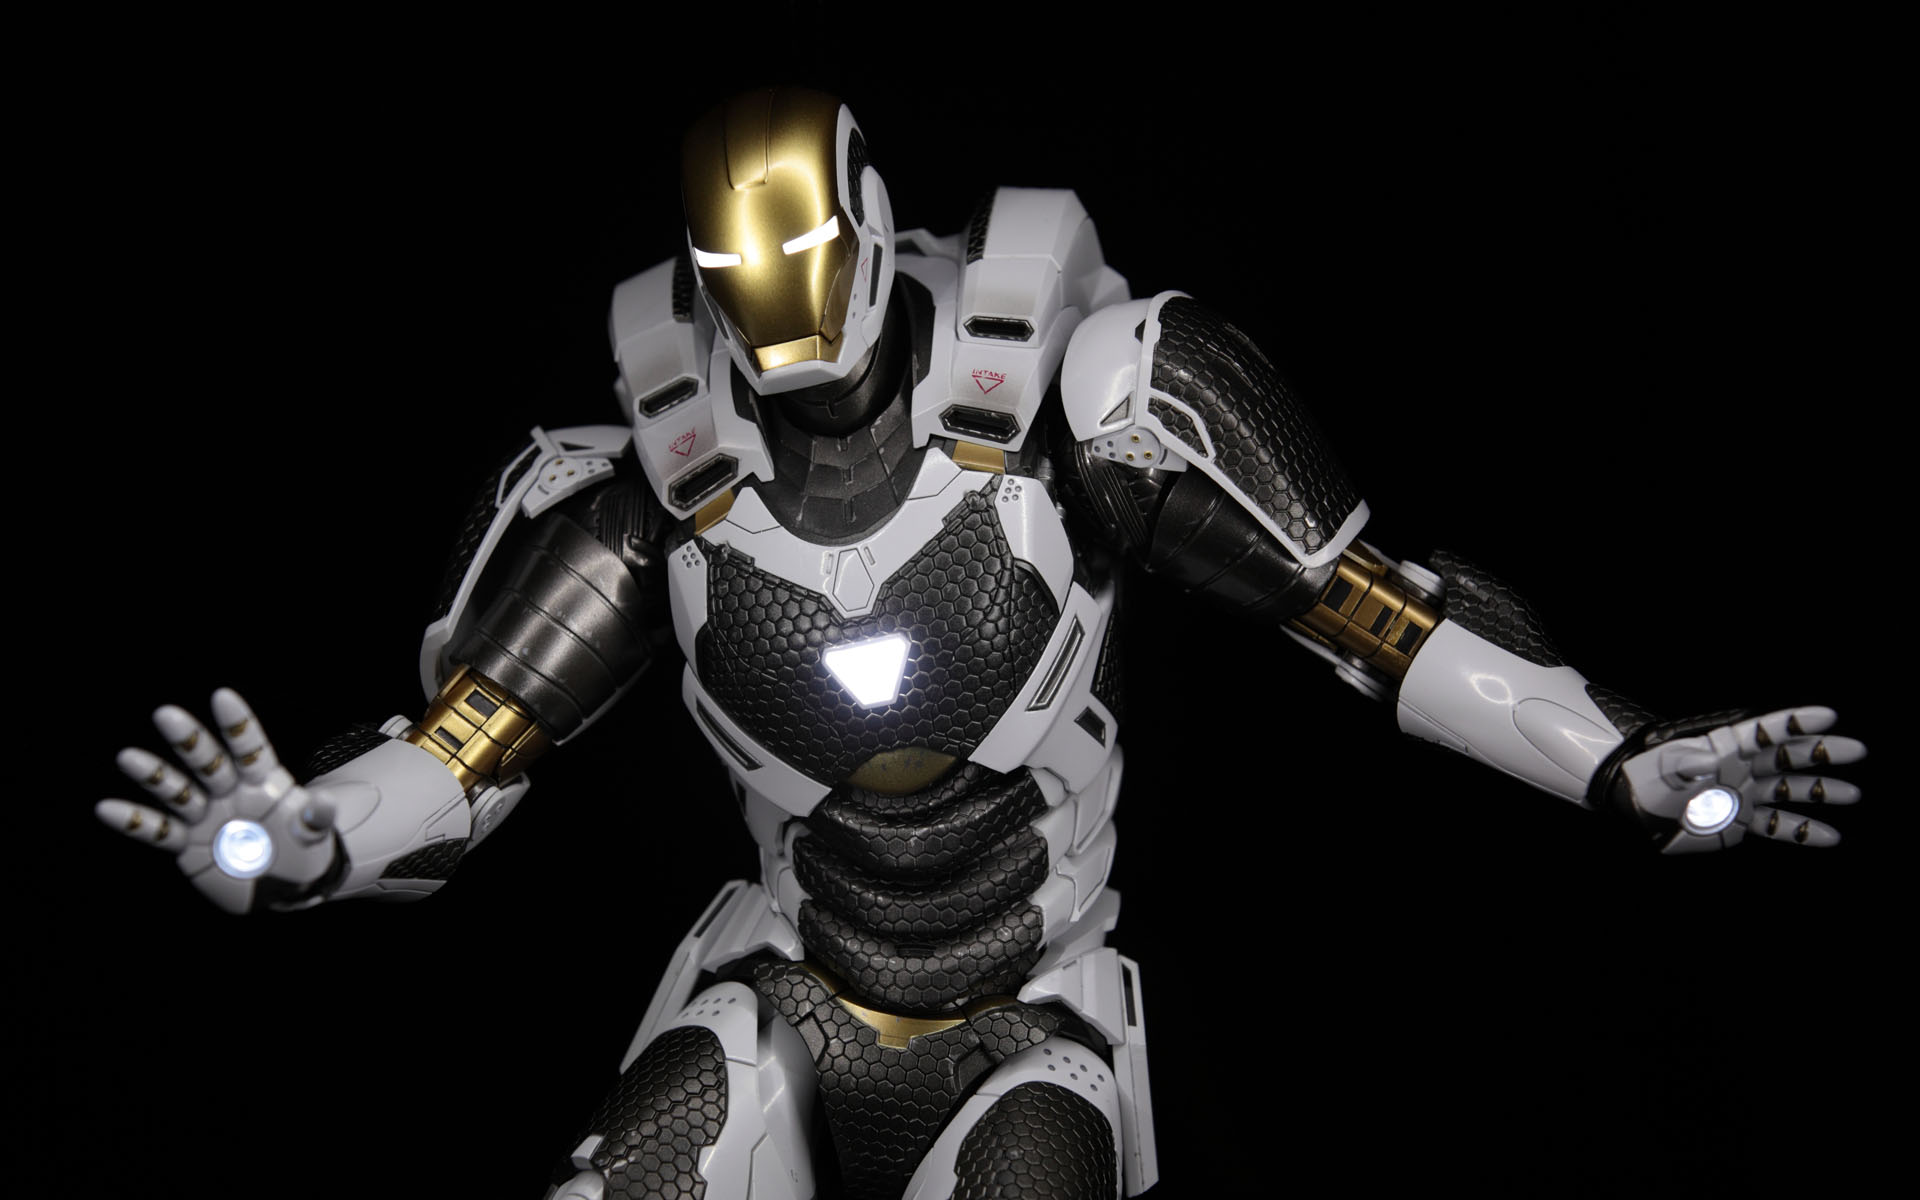 hottoys-iron-man3-mark-39-starboost-picture04